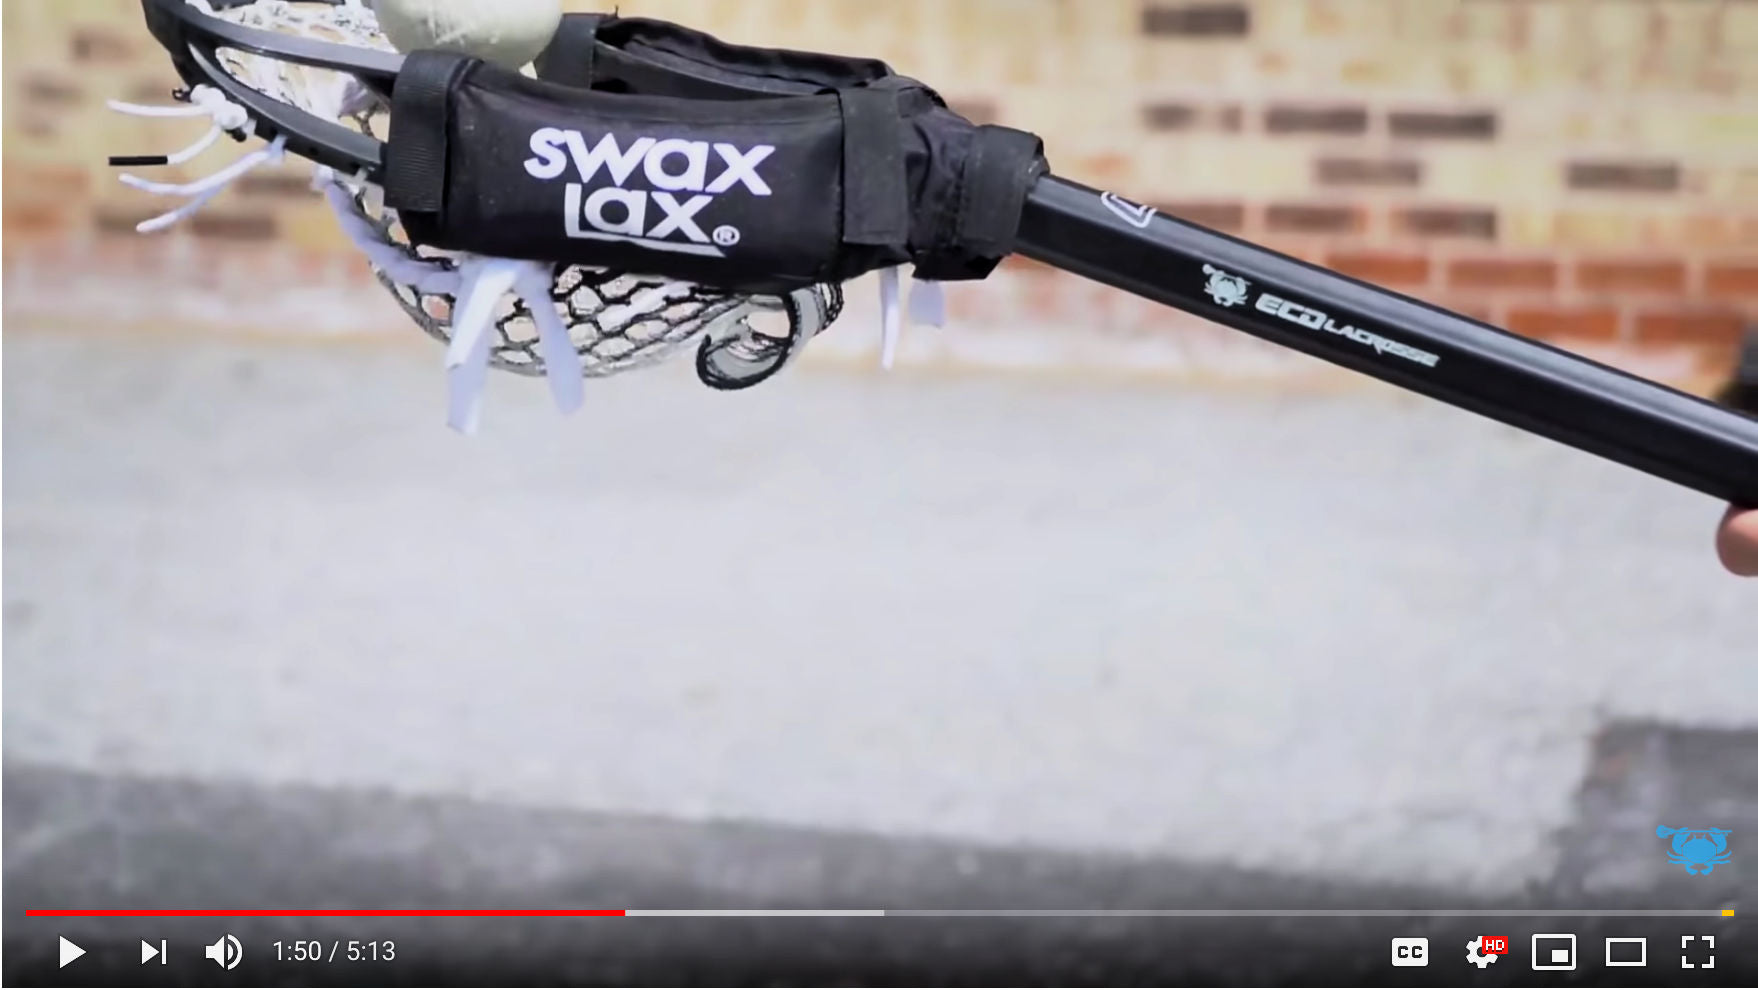 Swax Lax Power Weights reviewed by ECD Lacrosse - a big fan of weighted devices